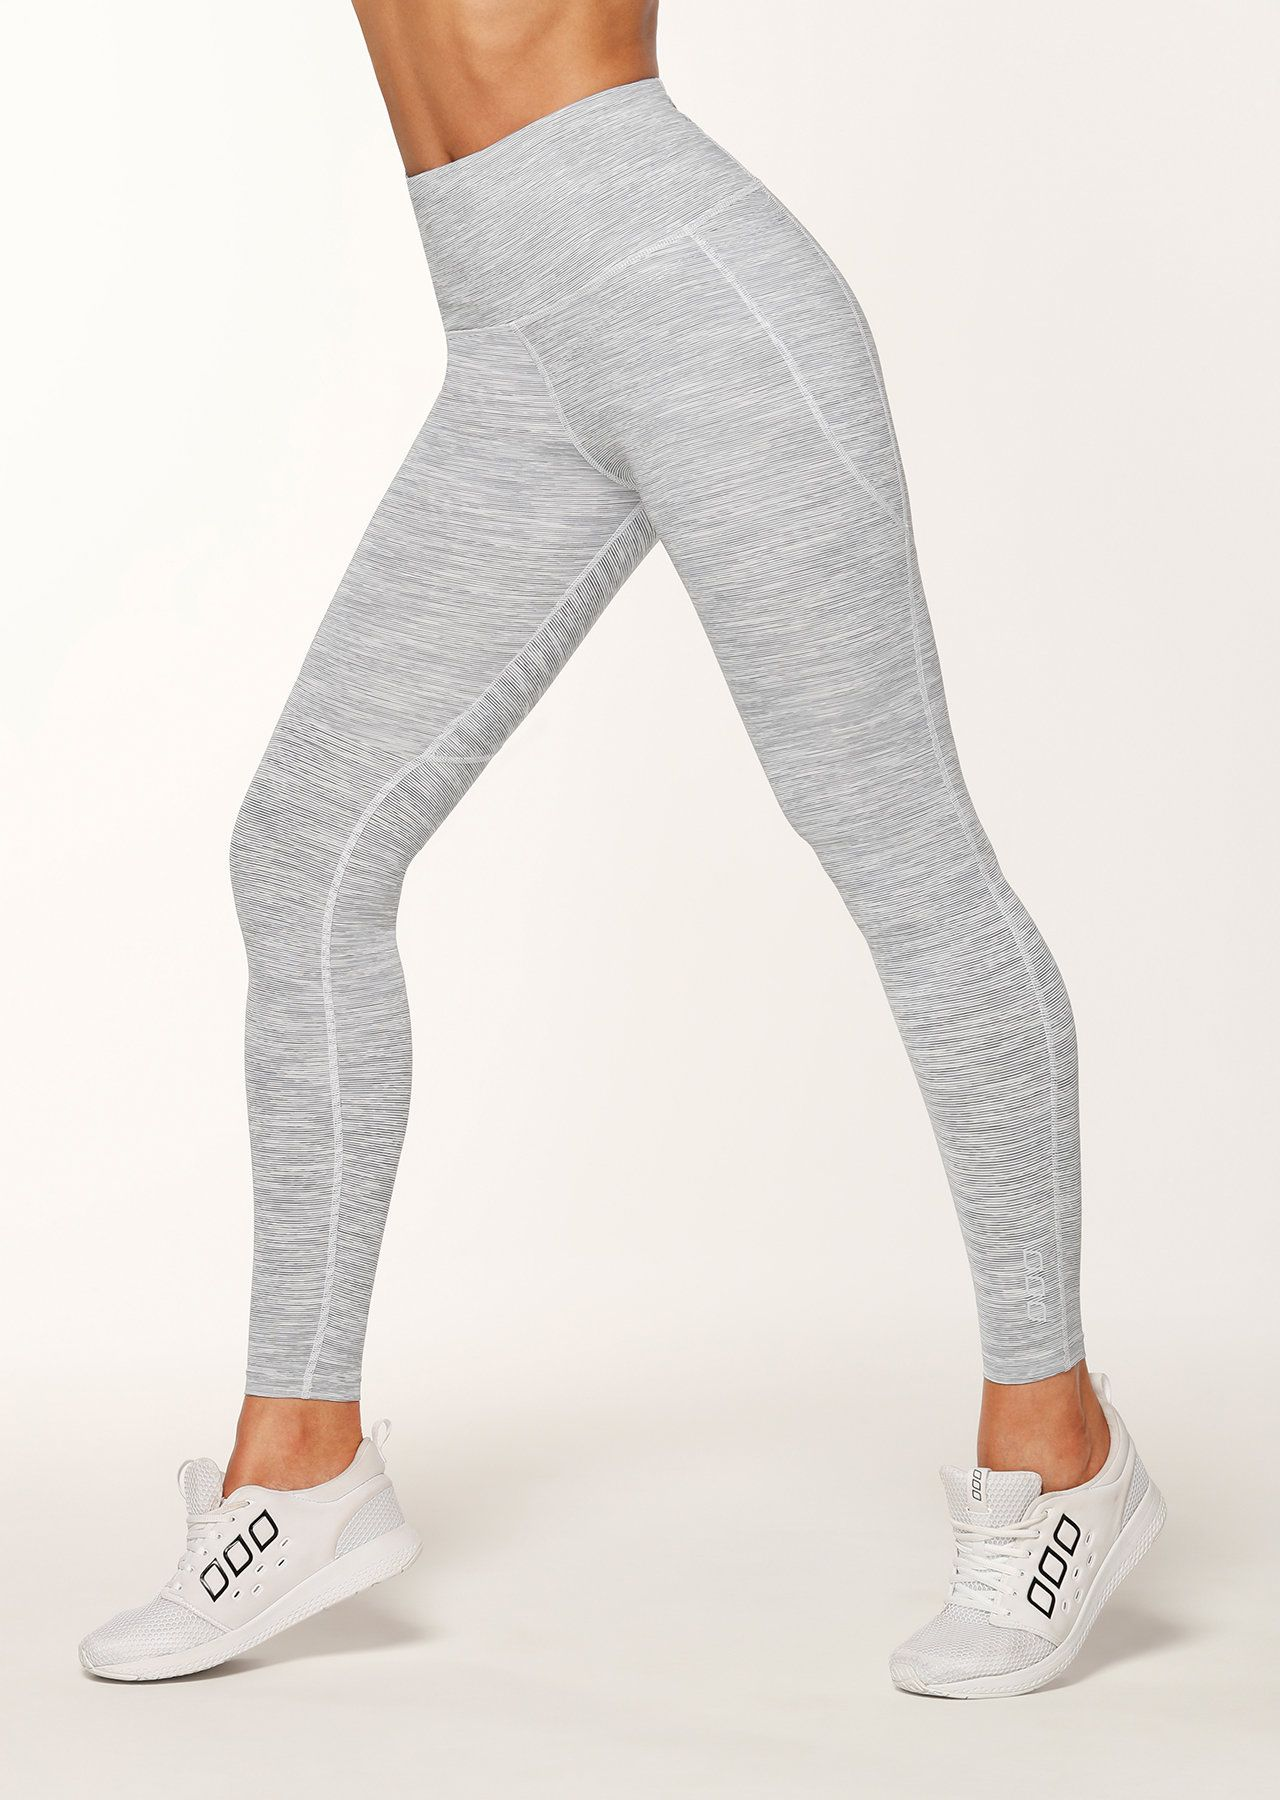 e105d5eaf120f2 Booty Support F/L Tight in 2019 | Fashion | Tights, Lorna jane ...